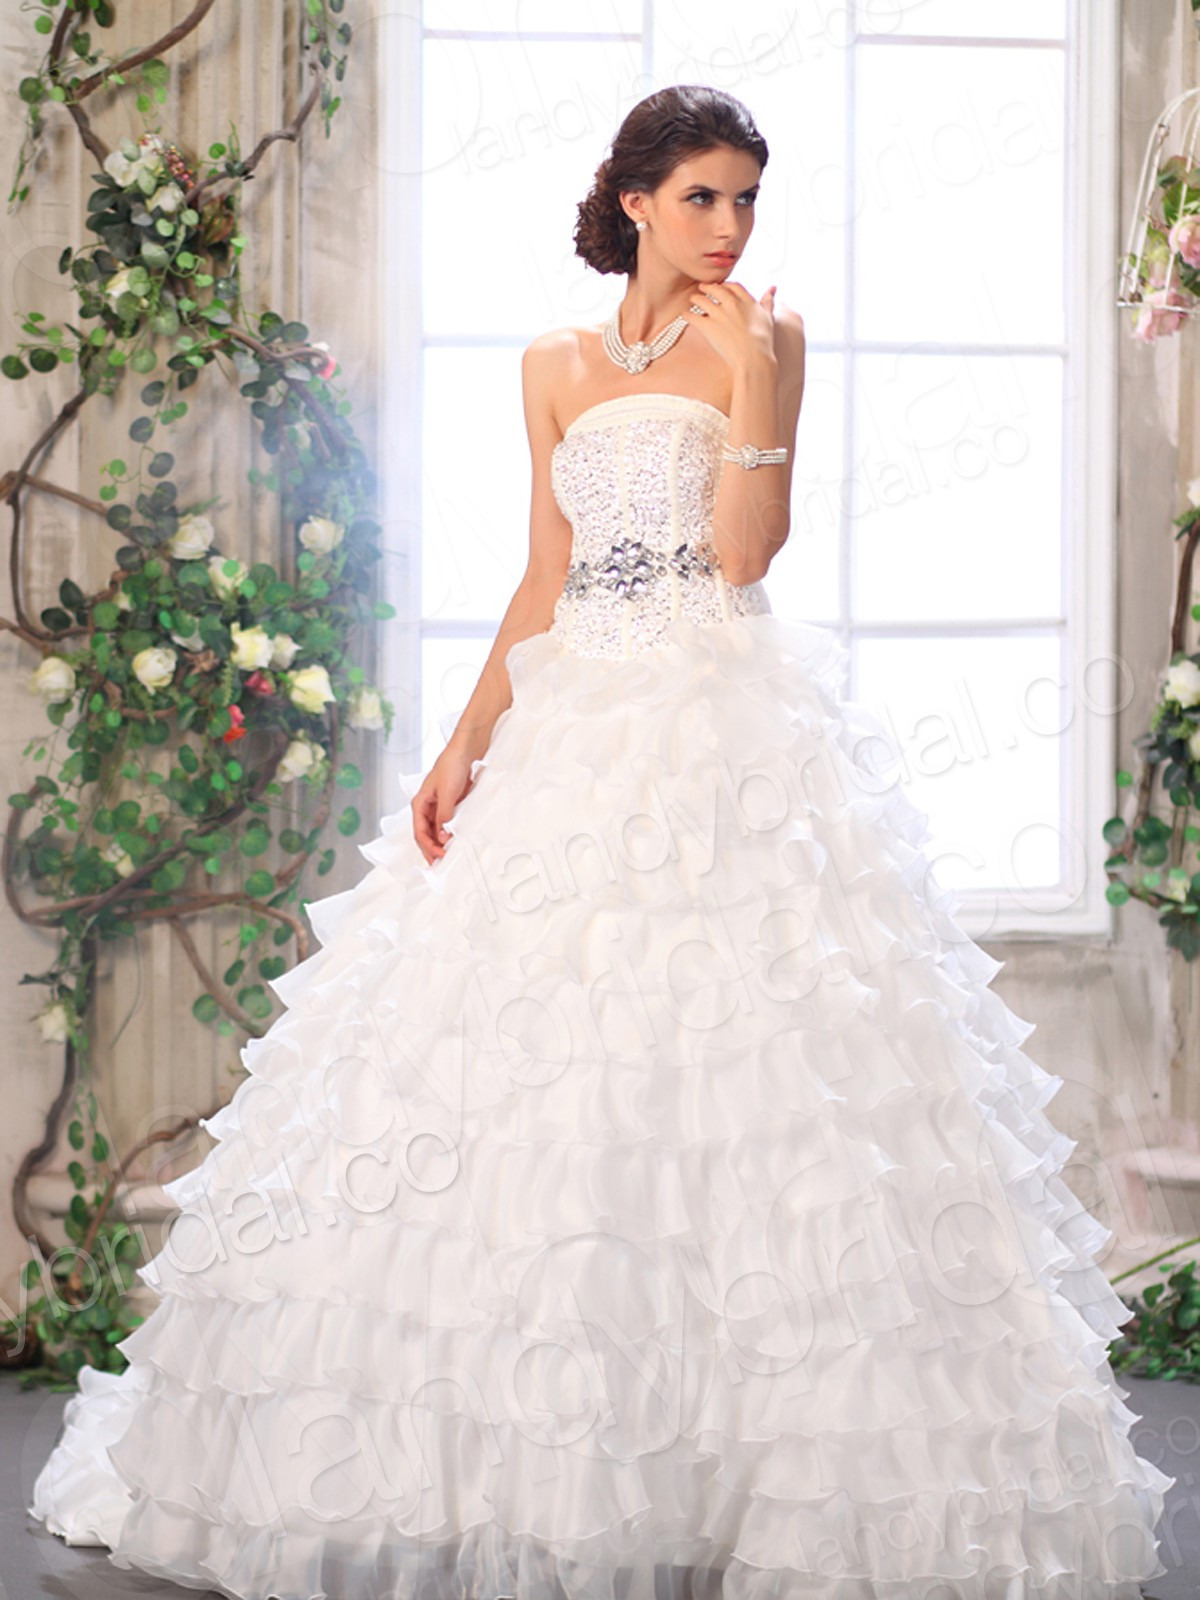 strapless ball gown wedding dresses with lace